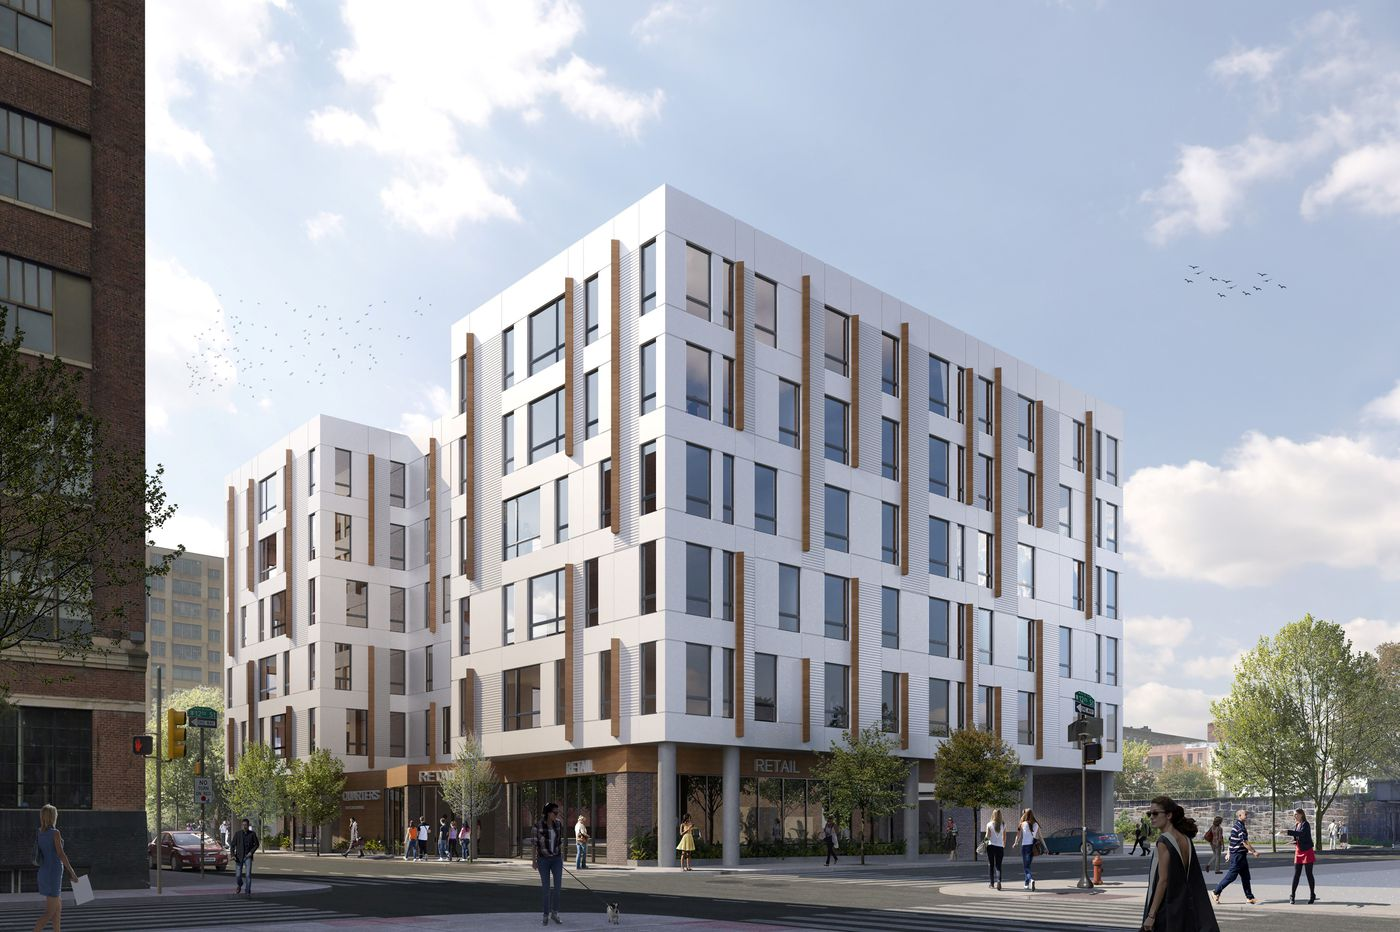 New 'co-living' apartment building to rise on parking lot along Rail Park north of Center City